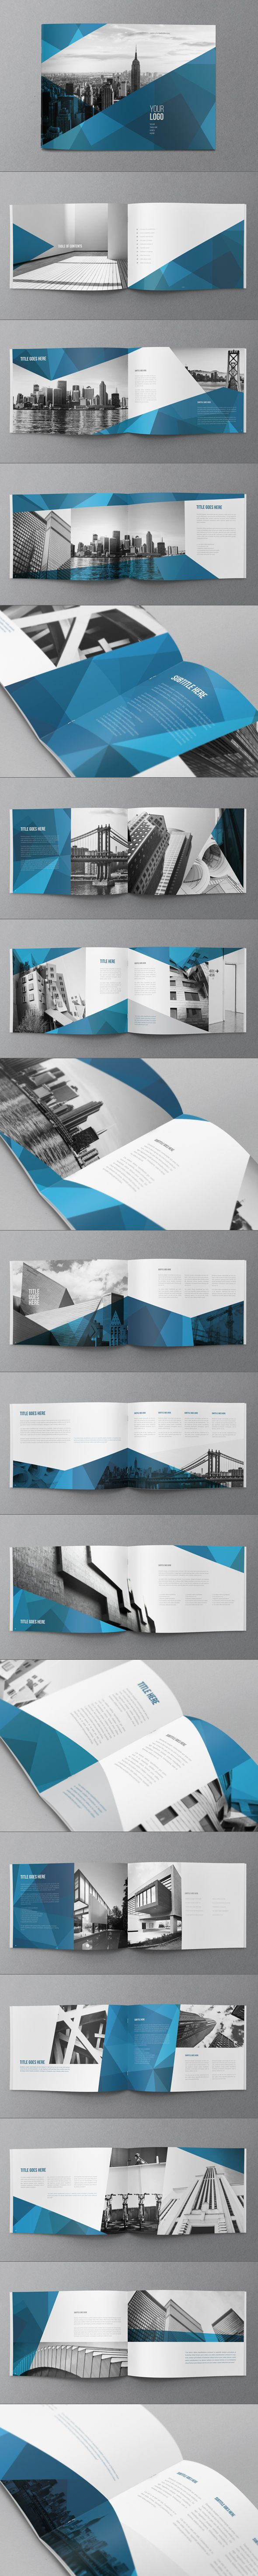 Abstract Architecture Brochure by Abra Design, via Behance _역풍 유니폼 레퍼런스